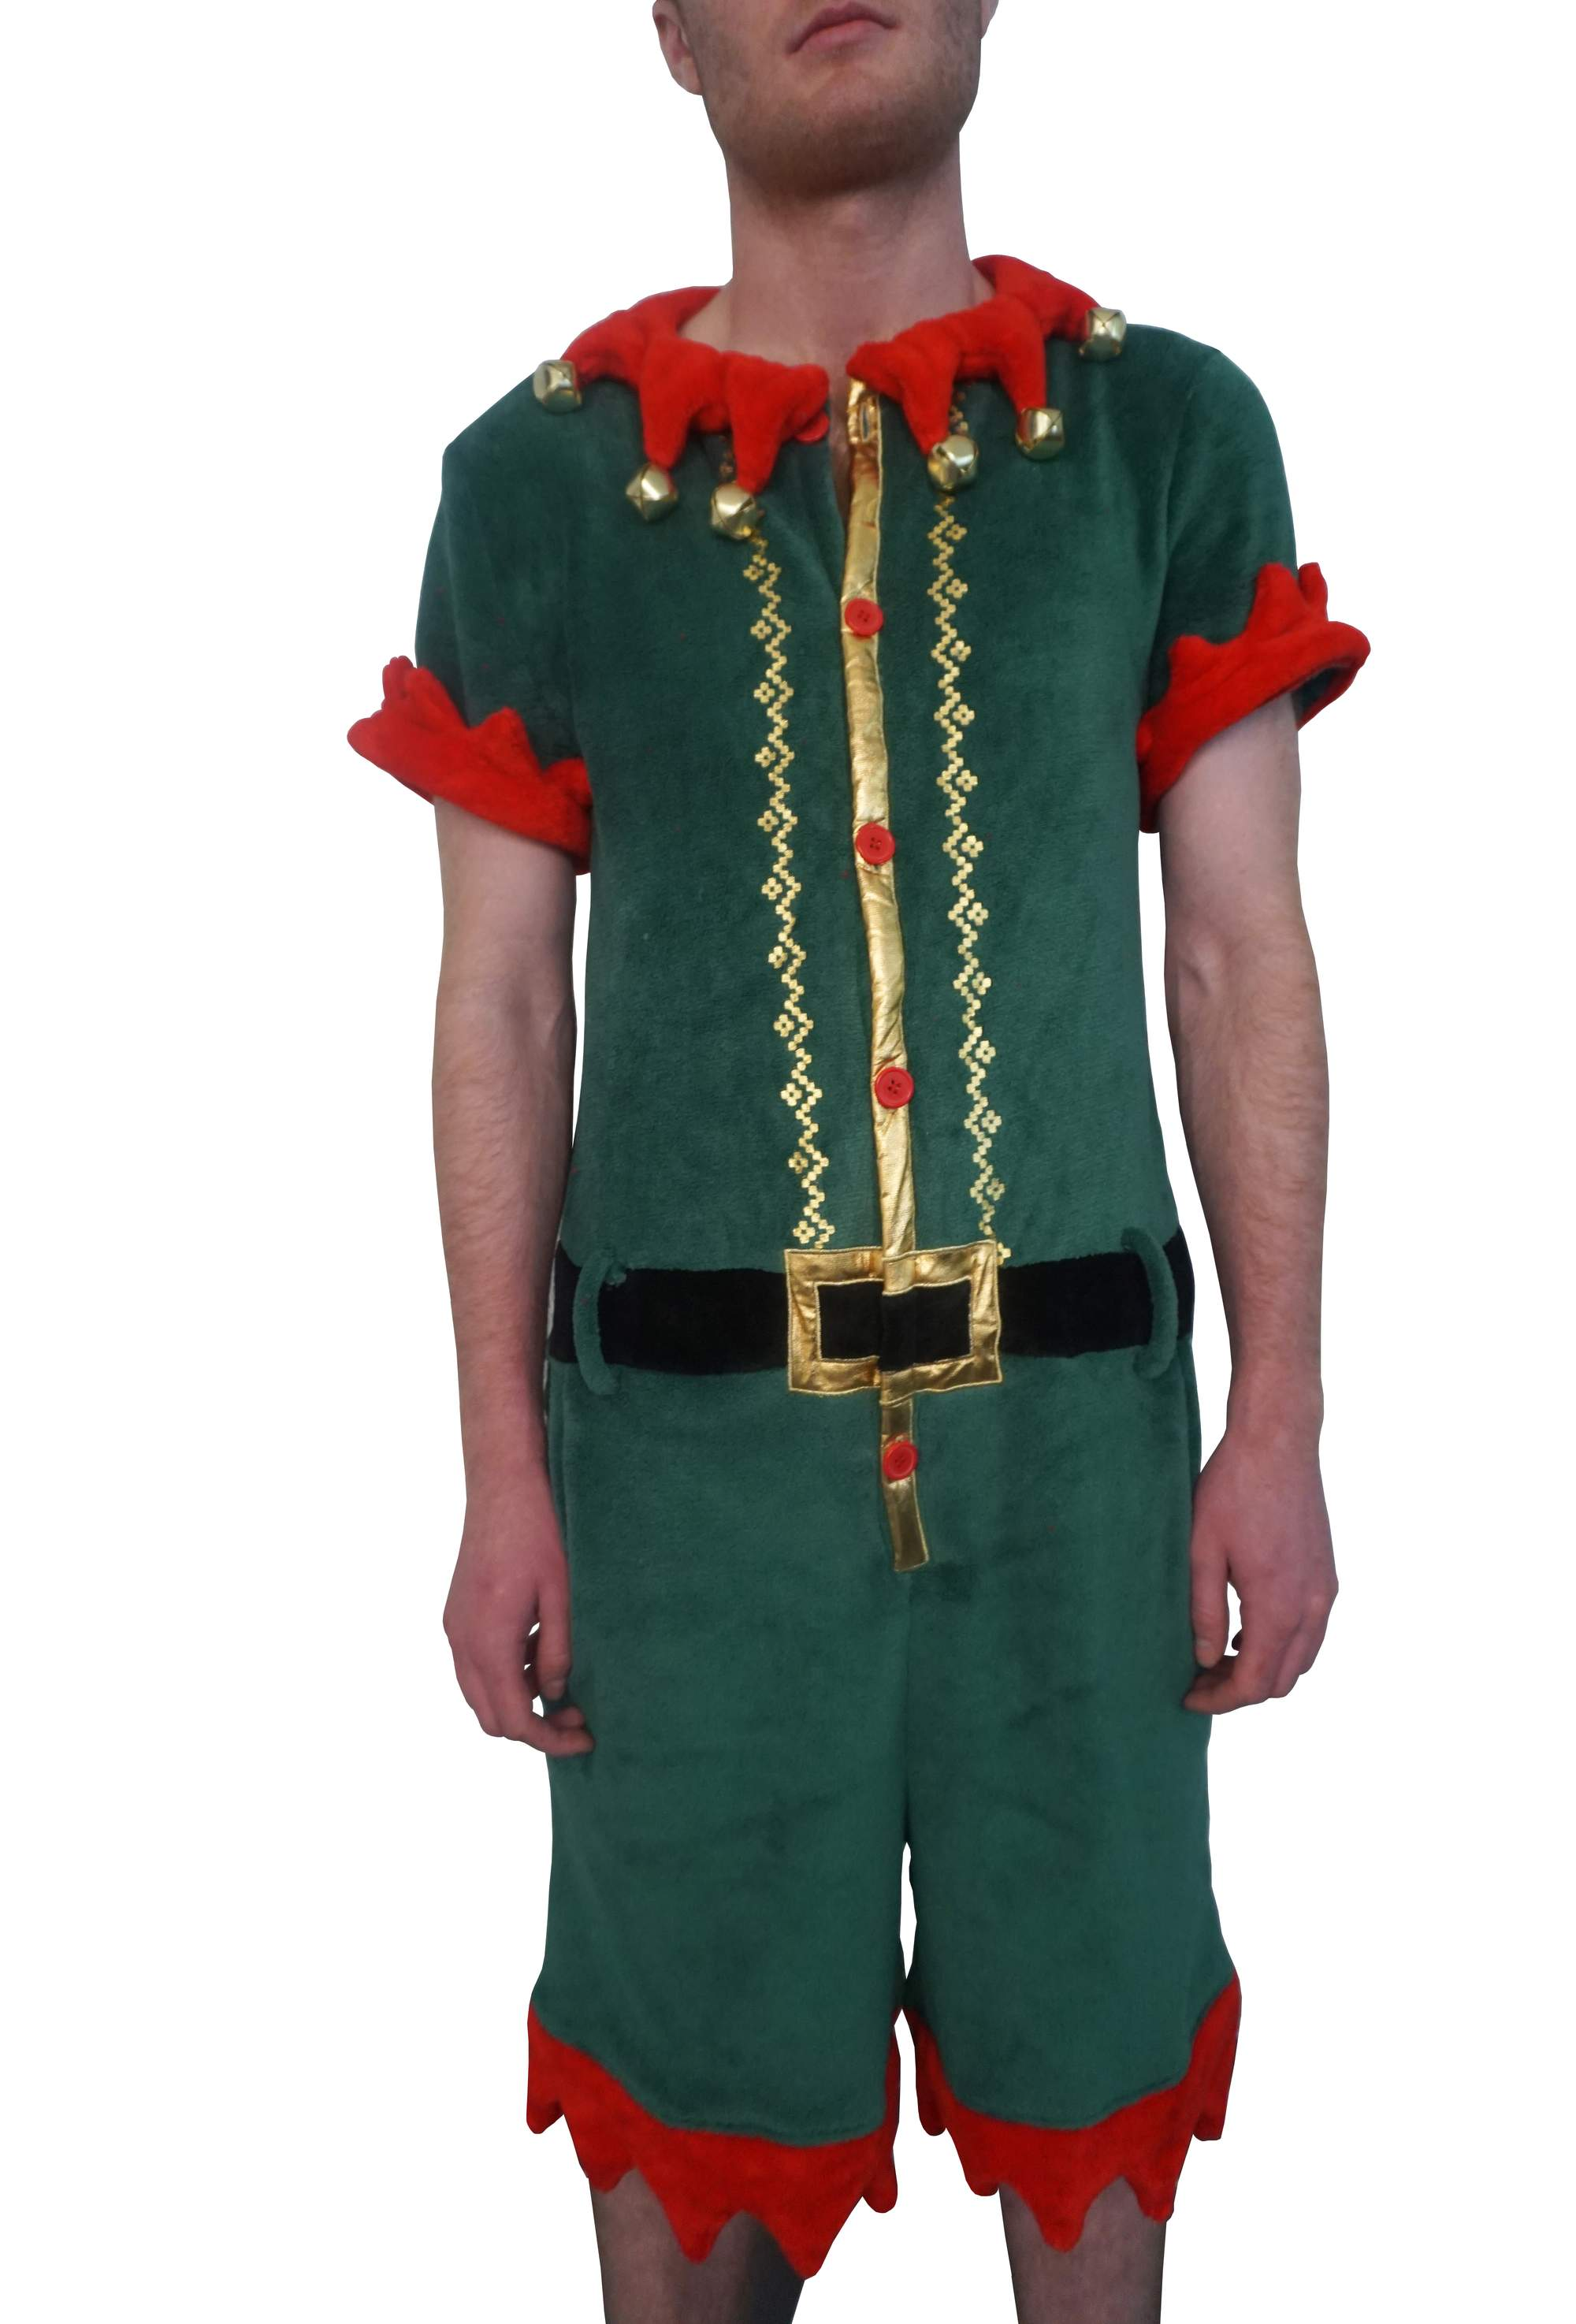 Holiday Men's Elf Ugly Christmas Romper, up to size 2XL